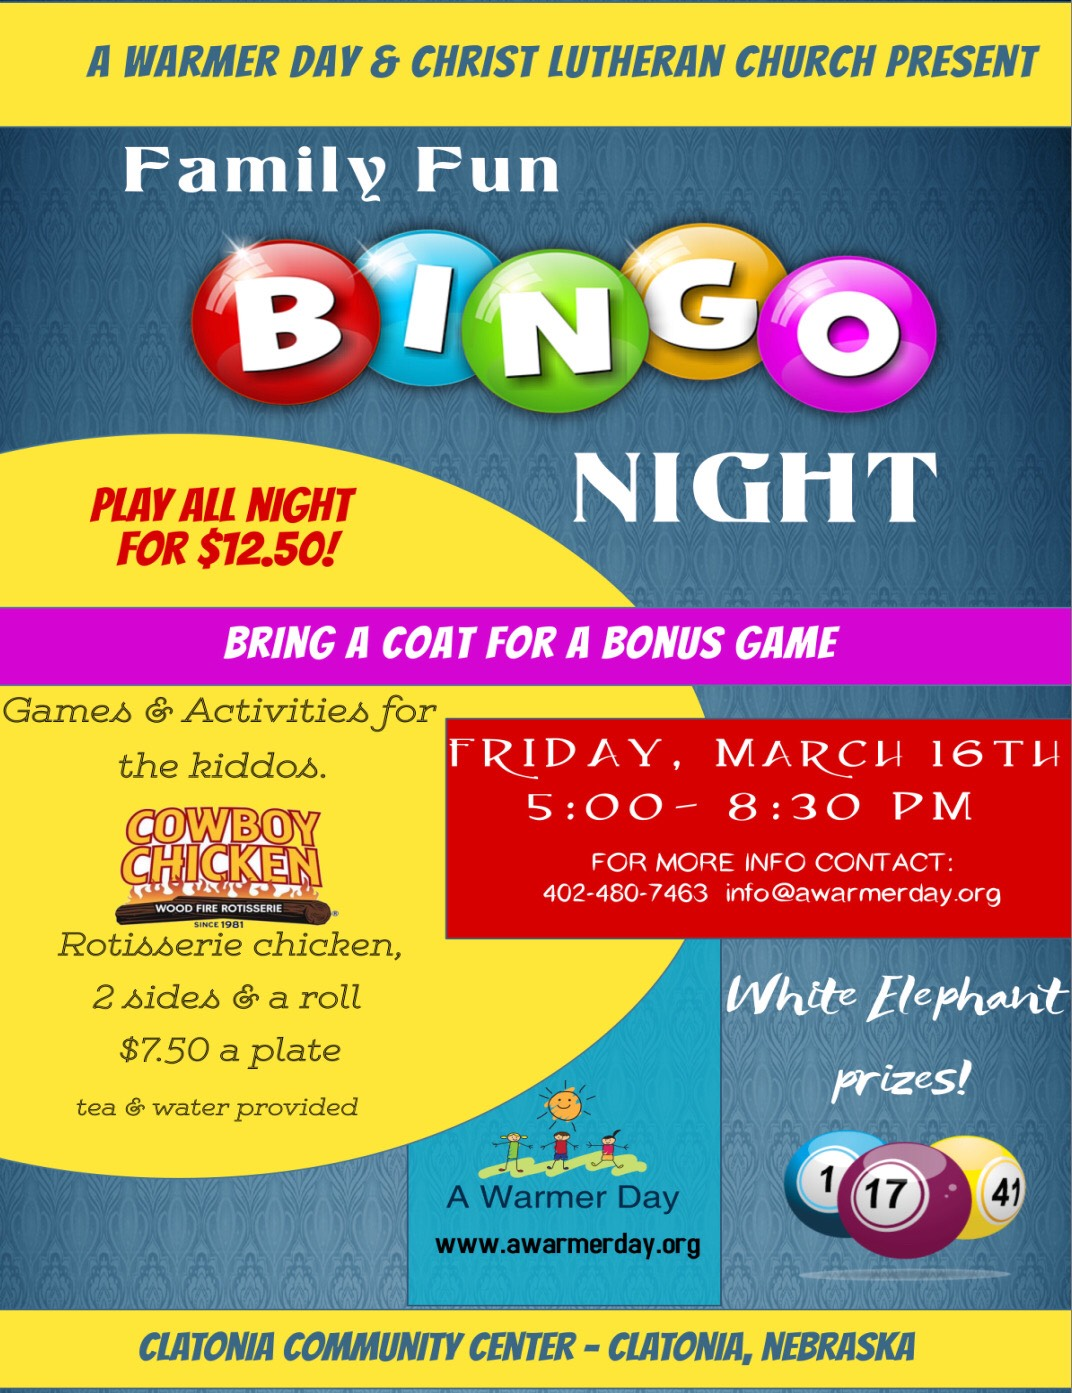 Bingo Night in Clatonia!